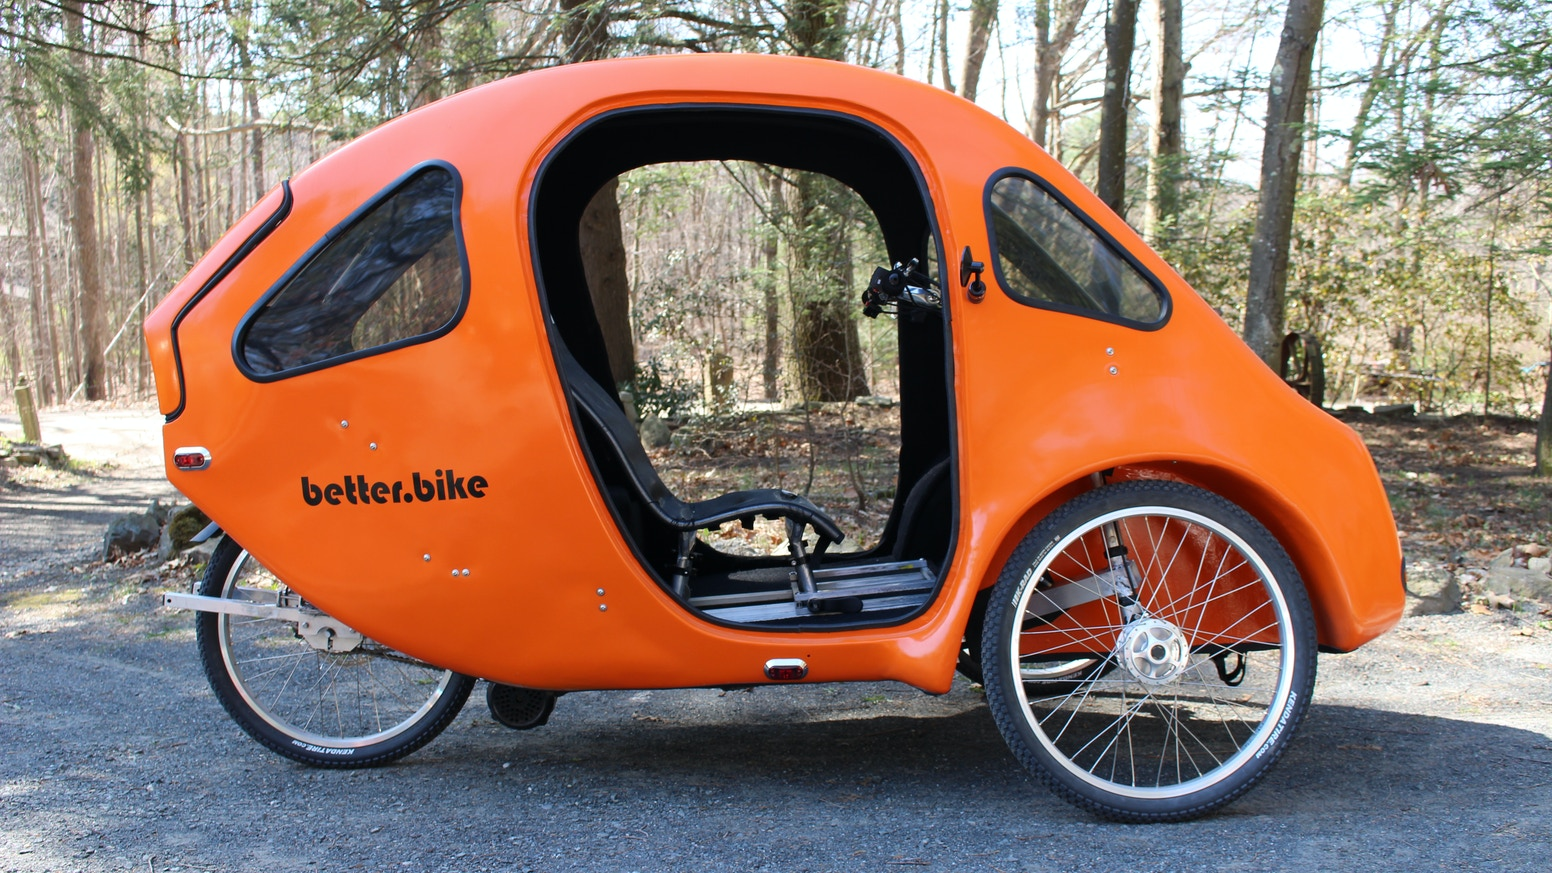 The Pebl A Fully Enclosed Four Season Hemp Based Pedal Electric Vehicle